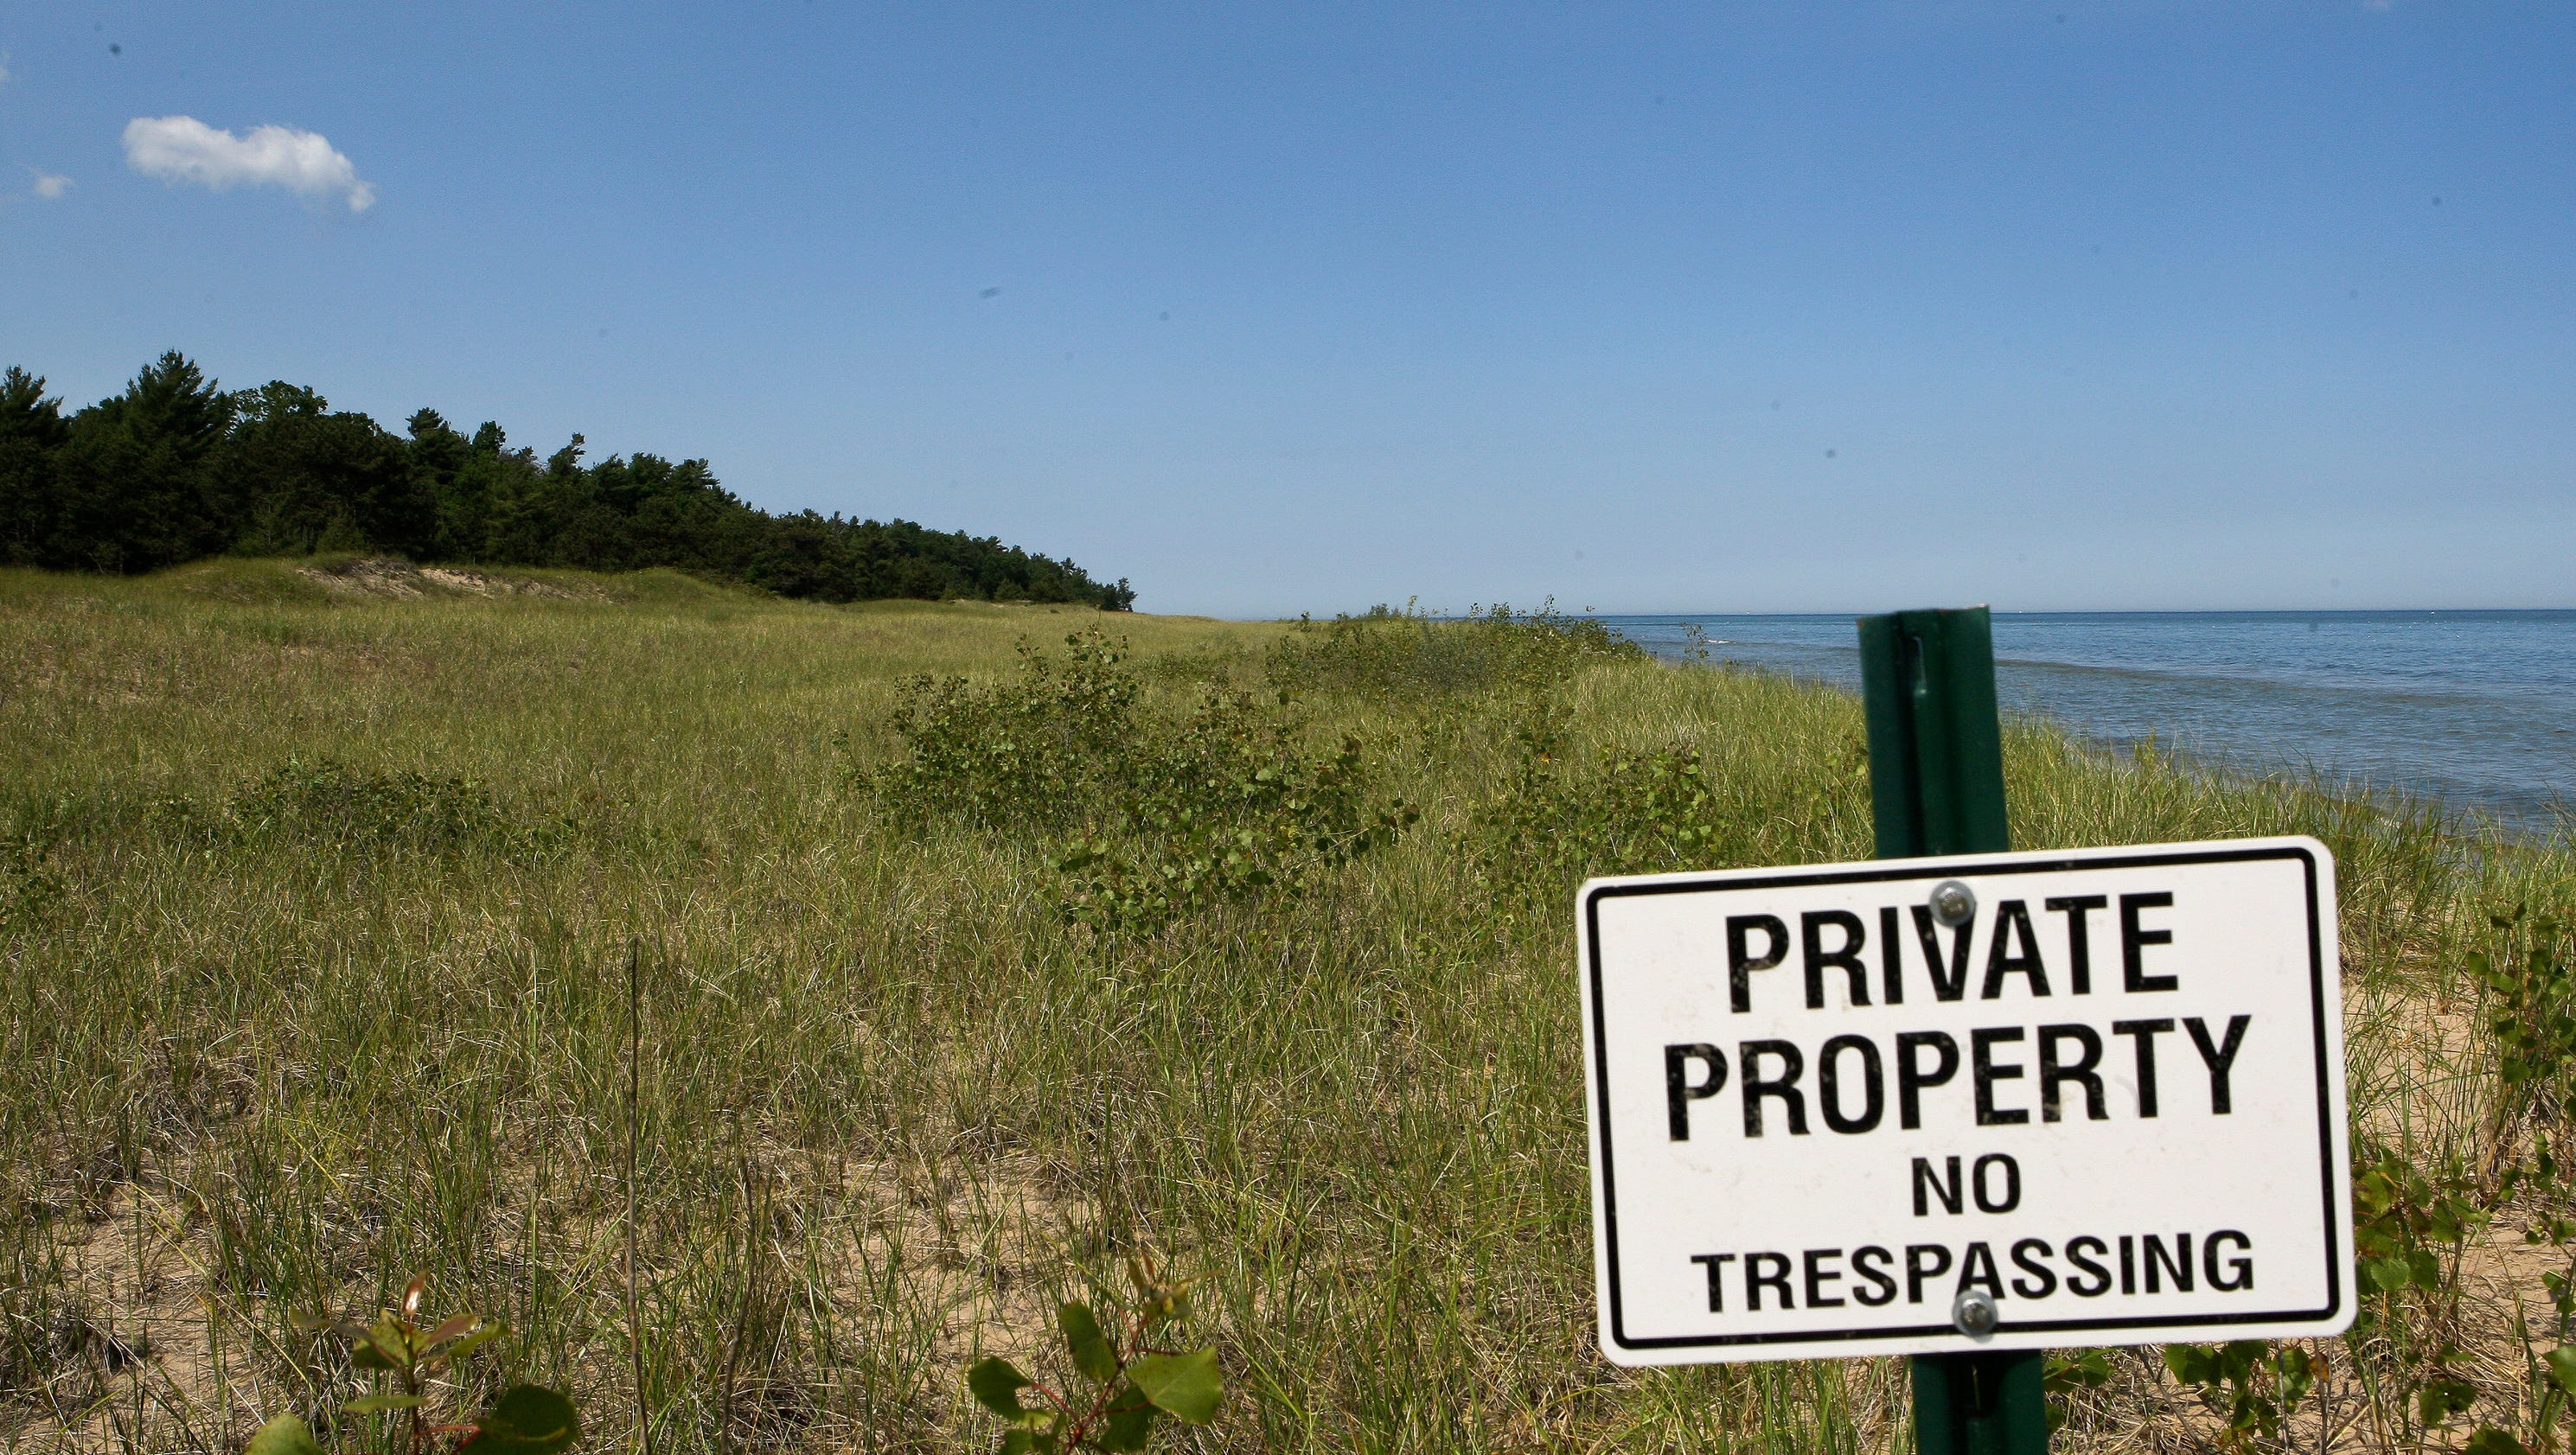 Wisconsin DNR approves wetlands permit for Kohler golf course on Lake Michigan shore